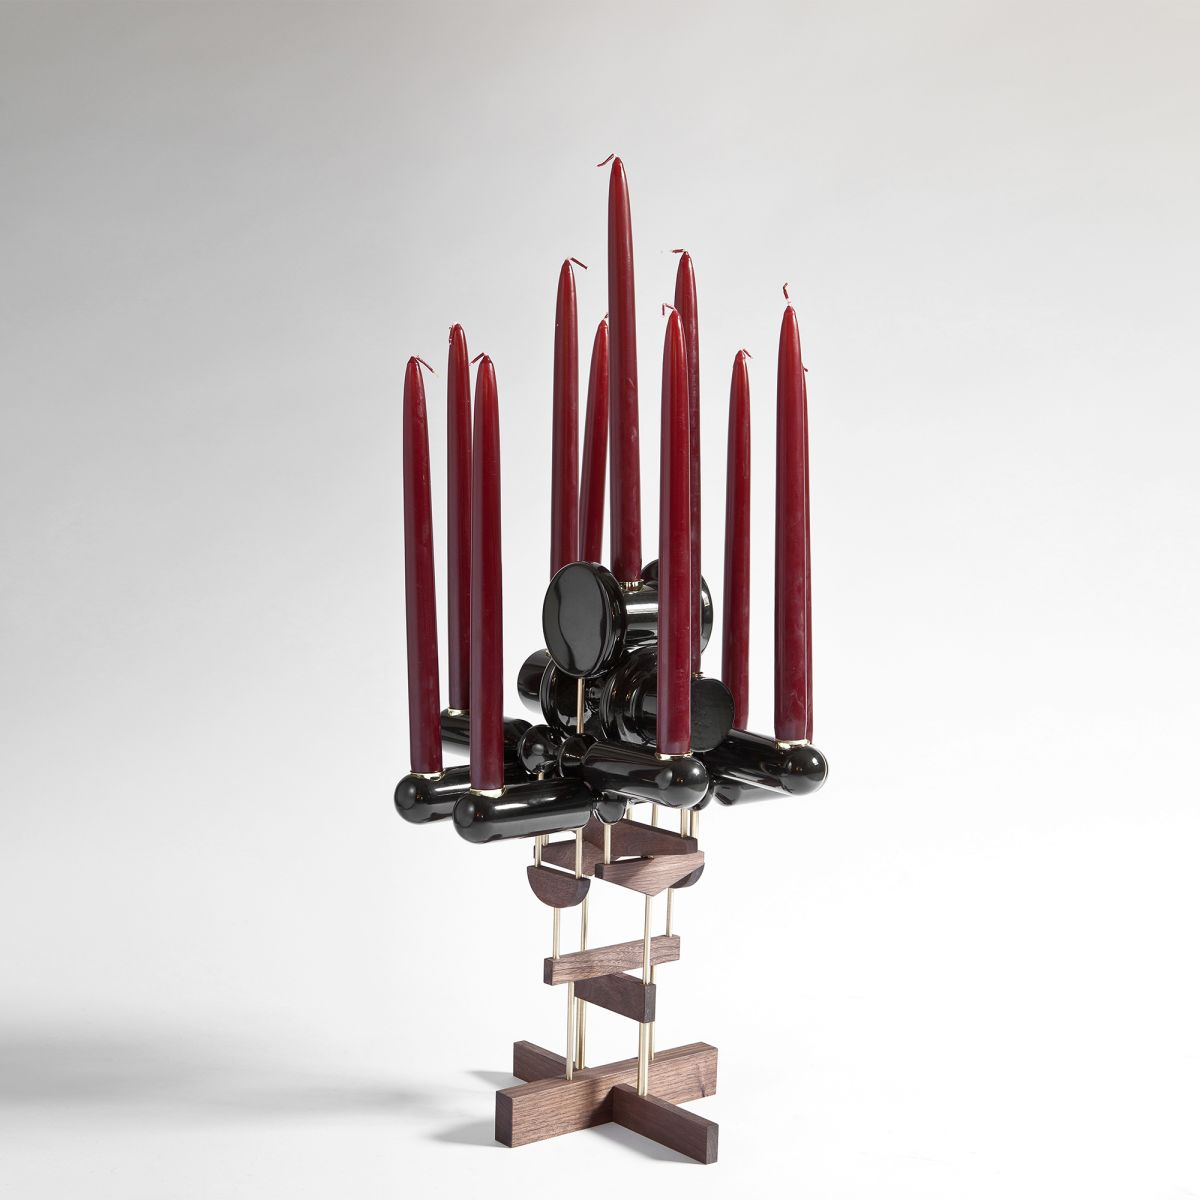 Two Shrine XL candelabras Bethan Laura Wood pic-1